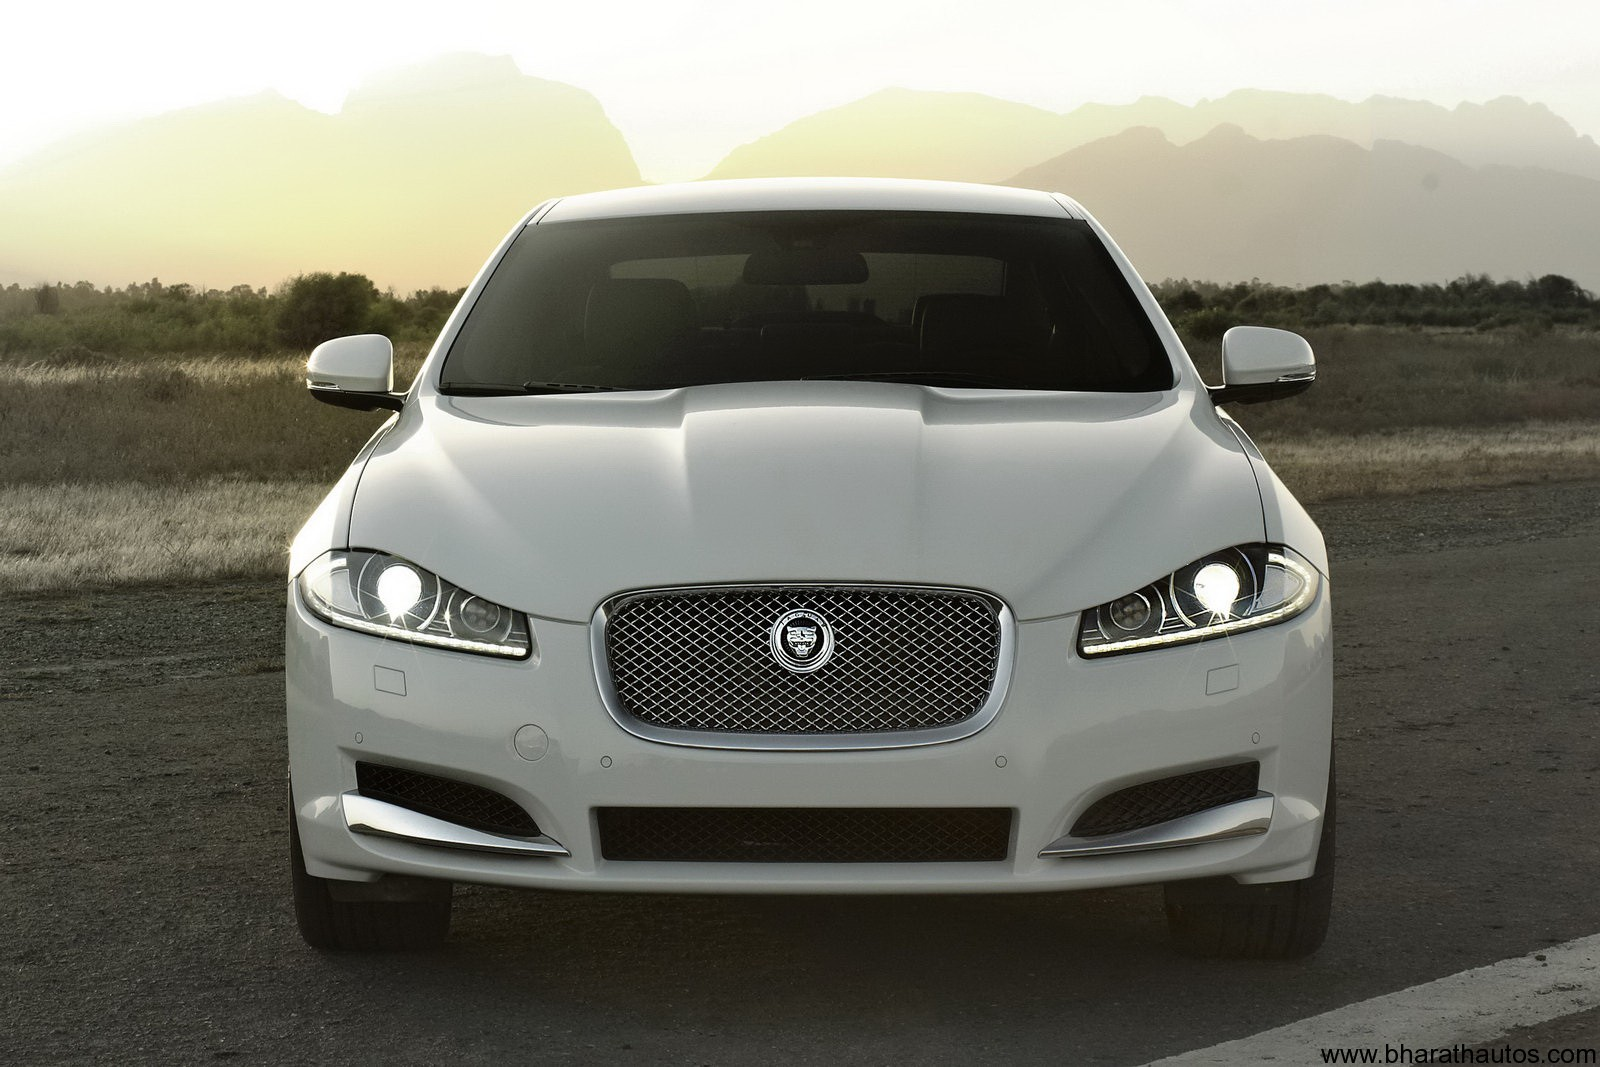 2012 Jaguar XF facelift To Launch Next Month in India Wallpapers Desktop Download